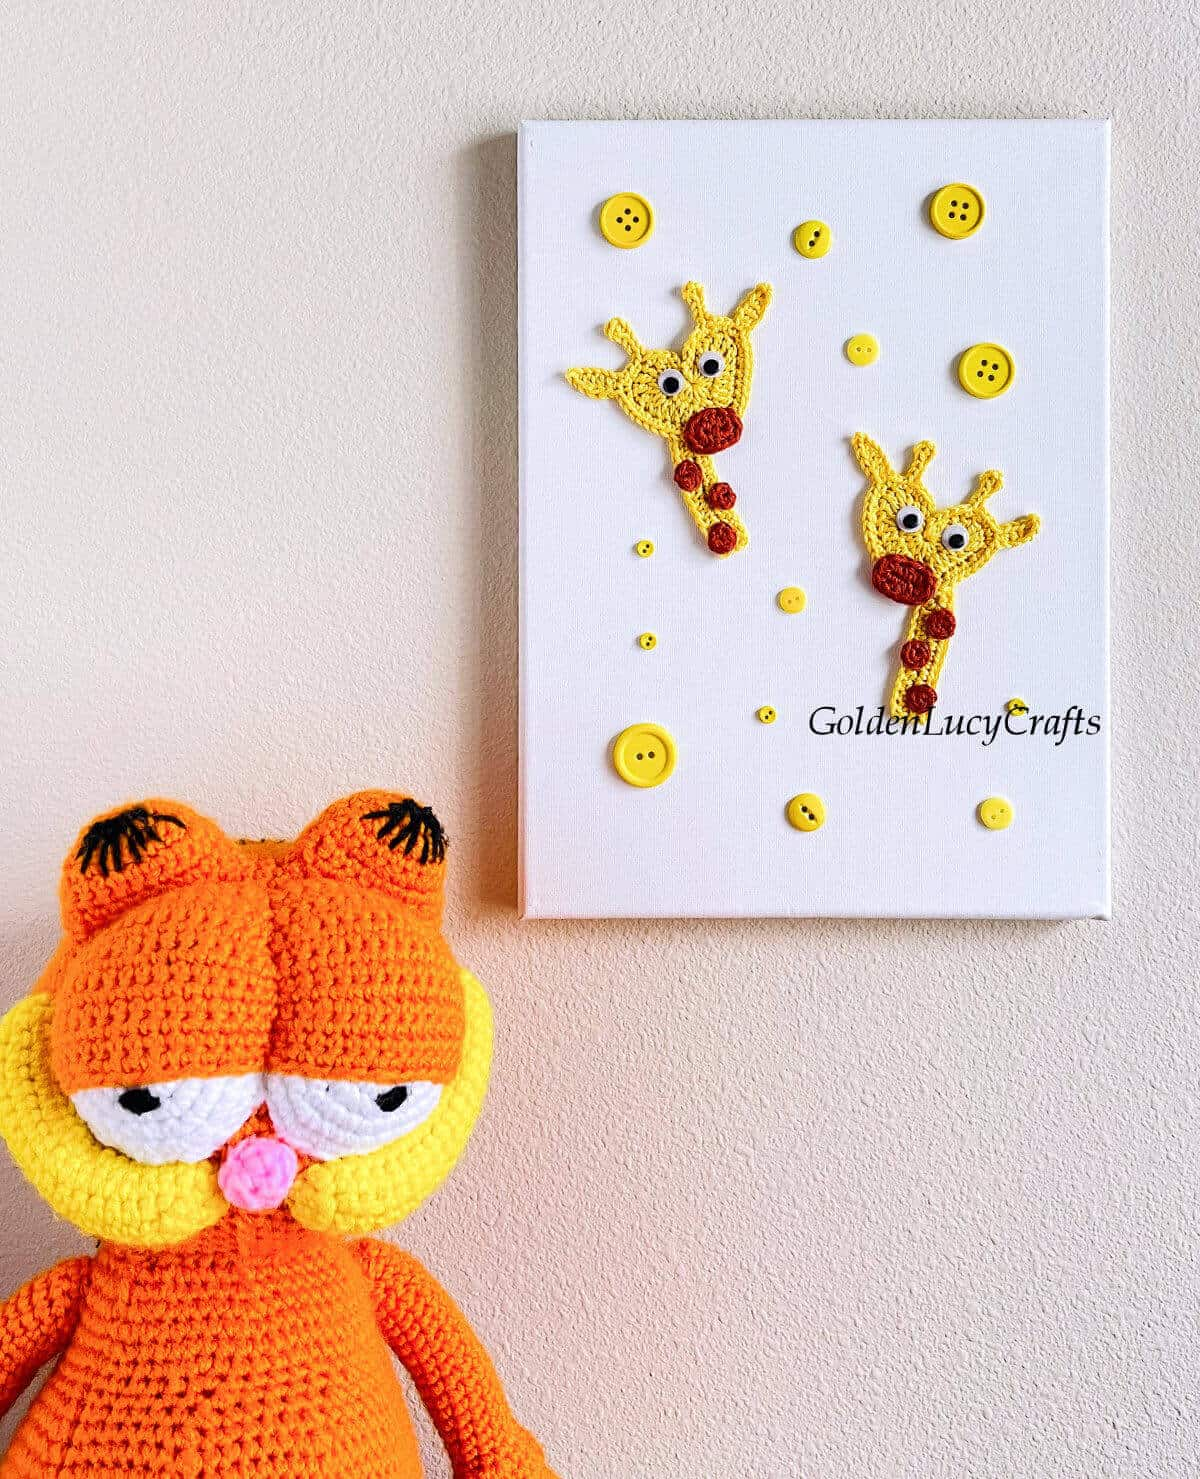 Two crocheted giraffe appliques on white canvas hanging on the wall, crocheted Garfield toy sitting next to it.